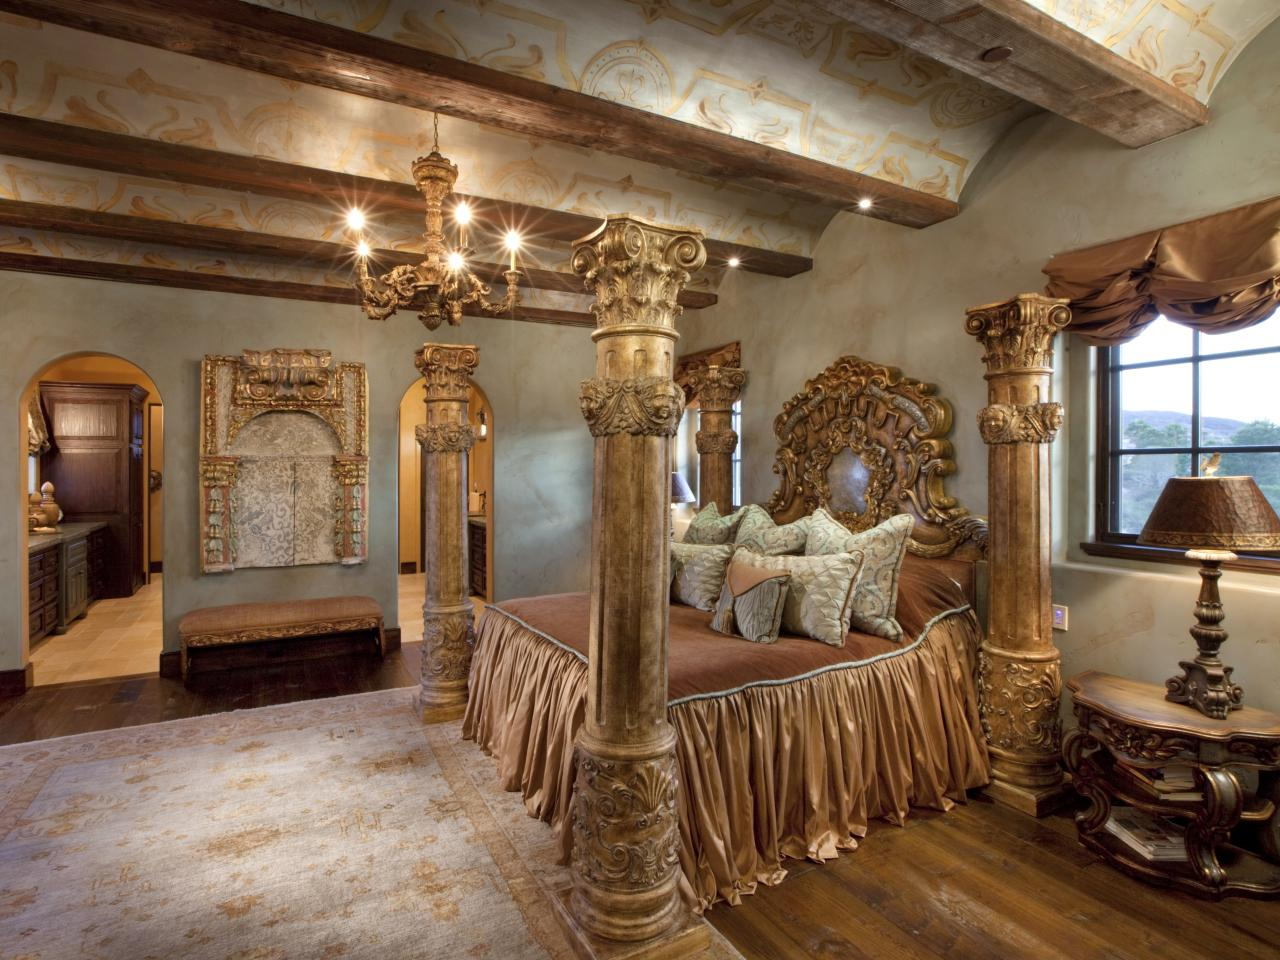 Gold Ornate Bedroom With Four Poster BedPhoto Page   HGTV. Ornate Bedroom Furniture. Home Design Ideas